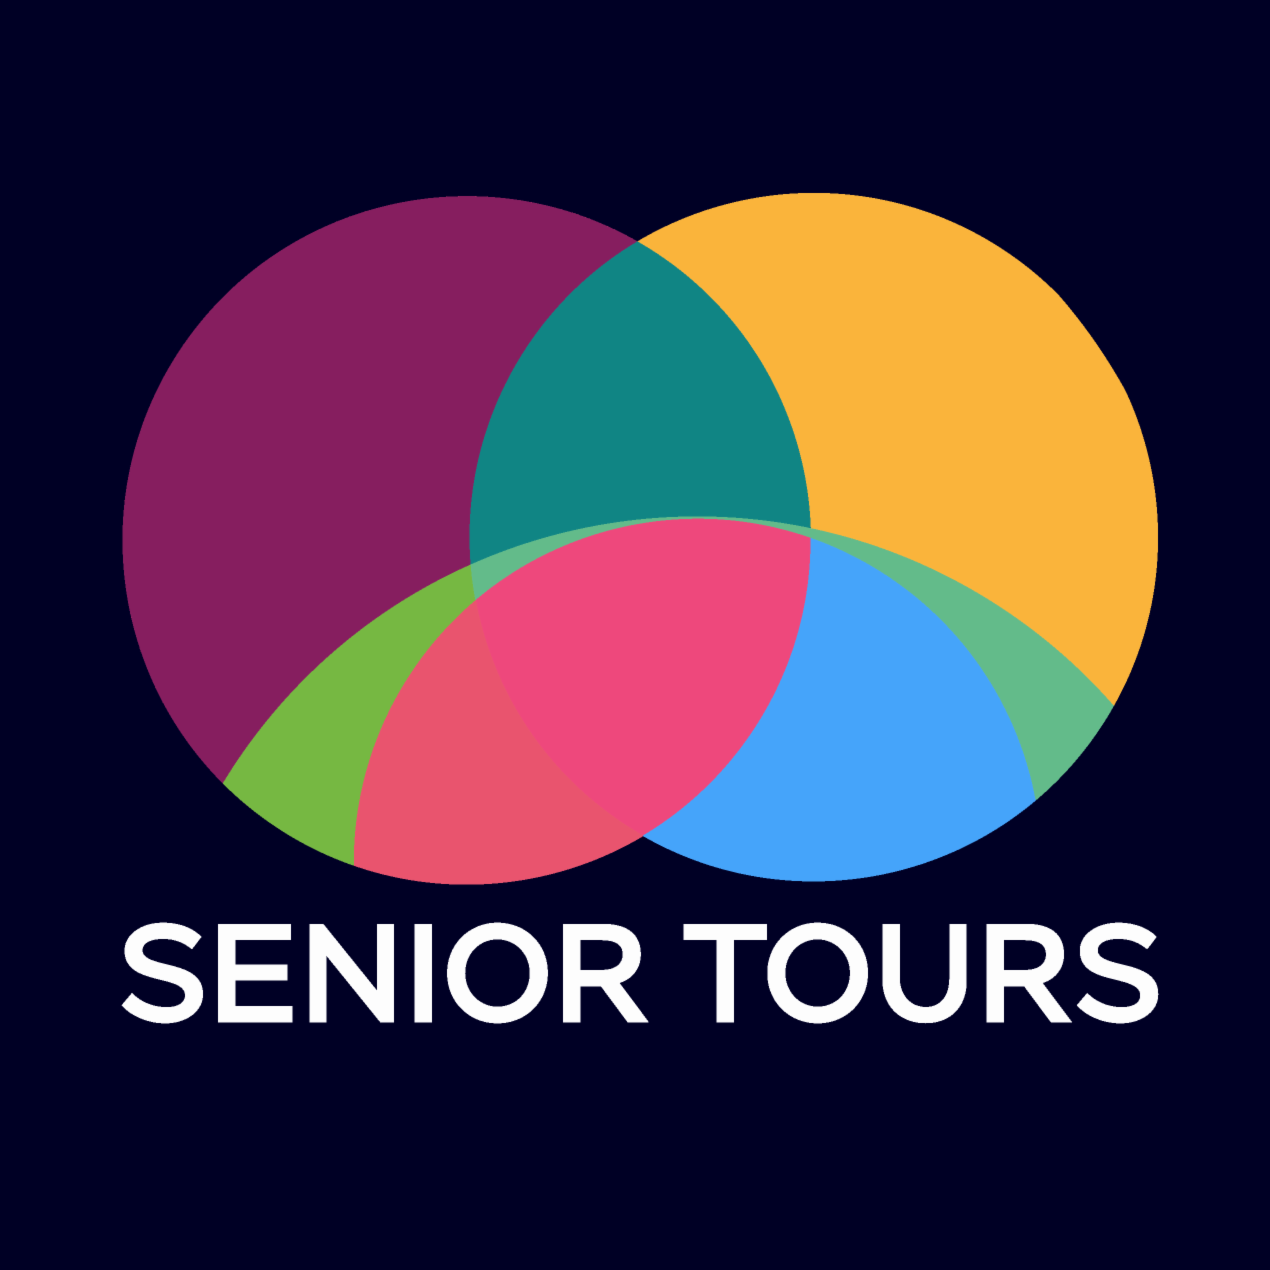 Senior Tours - Ridgefield, WA 98642 - (360)227-0321 | ShowMeLocal.com